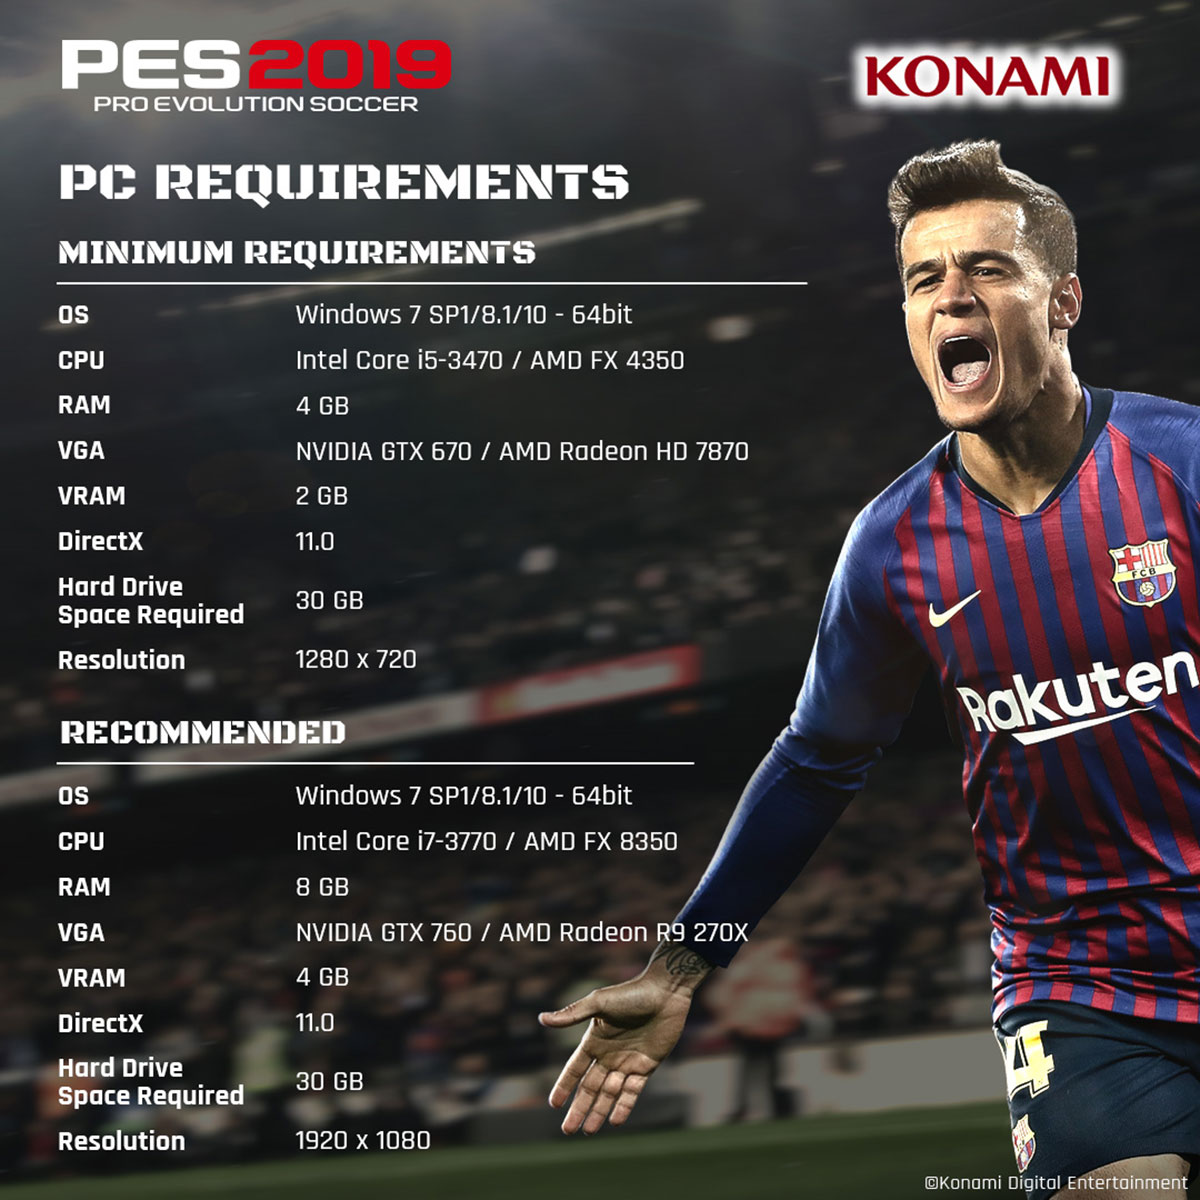 PC requirements for the PC version of PES 2019 have been announced